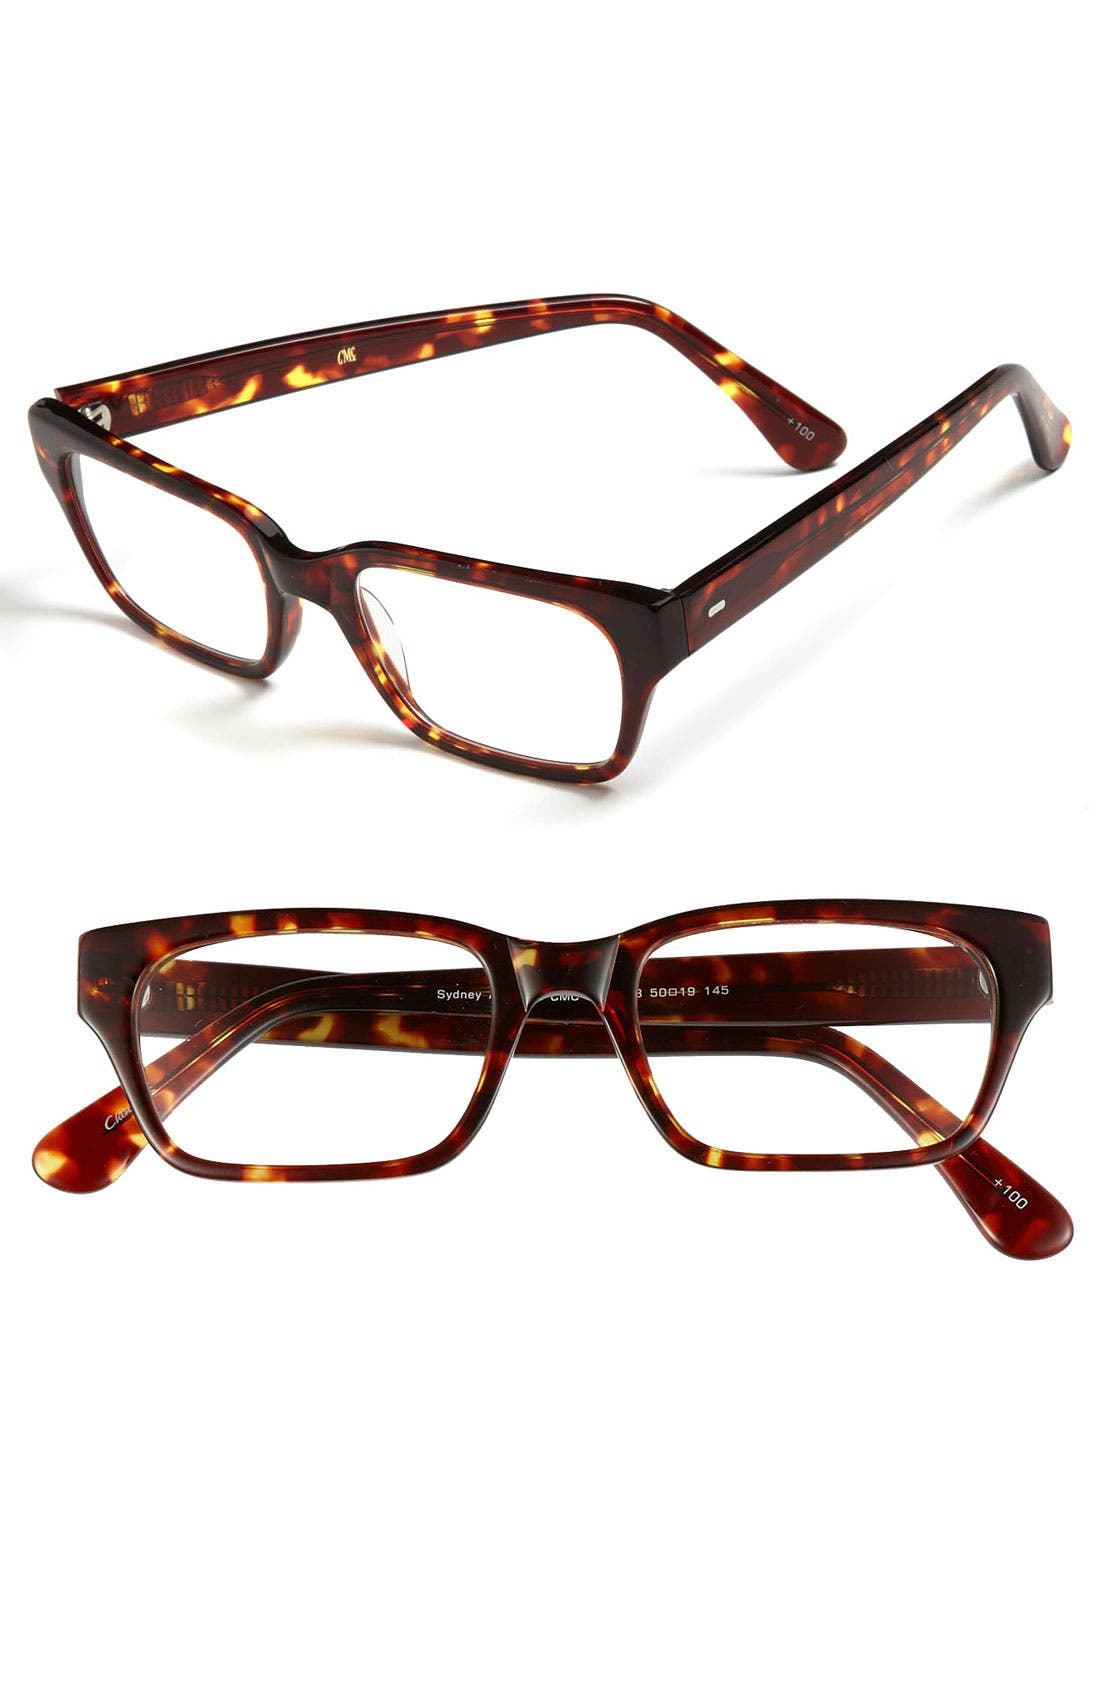 Alternate Image 1 Selected - Corinne McCormack 'Sydney' 50mm Reading Glasses (Online Only) (2 for $88)